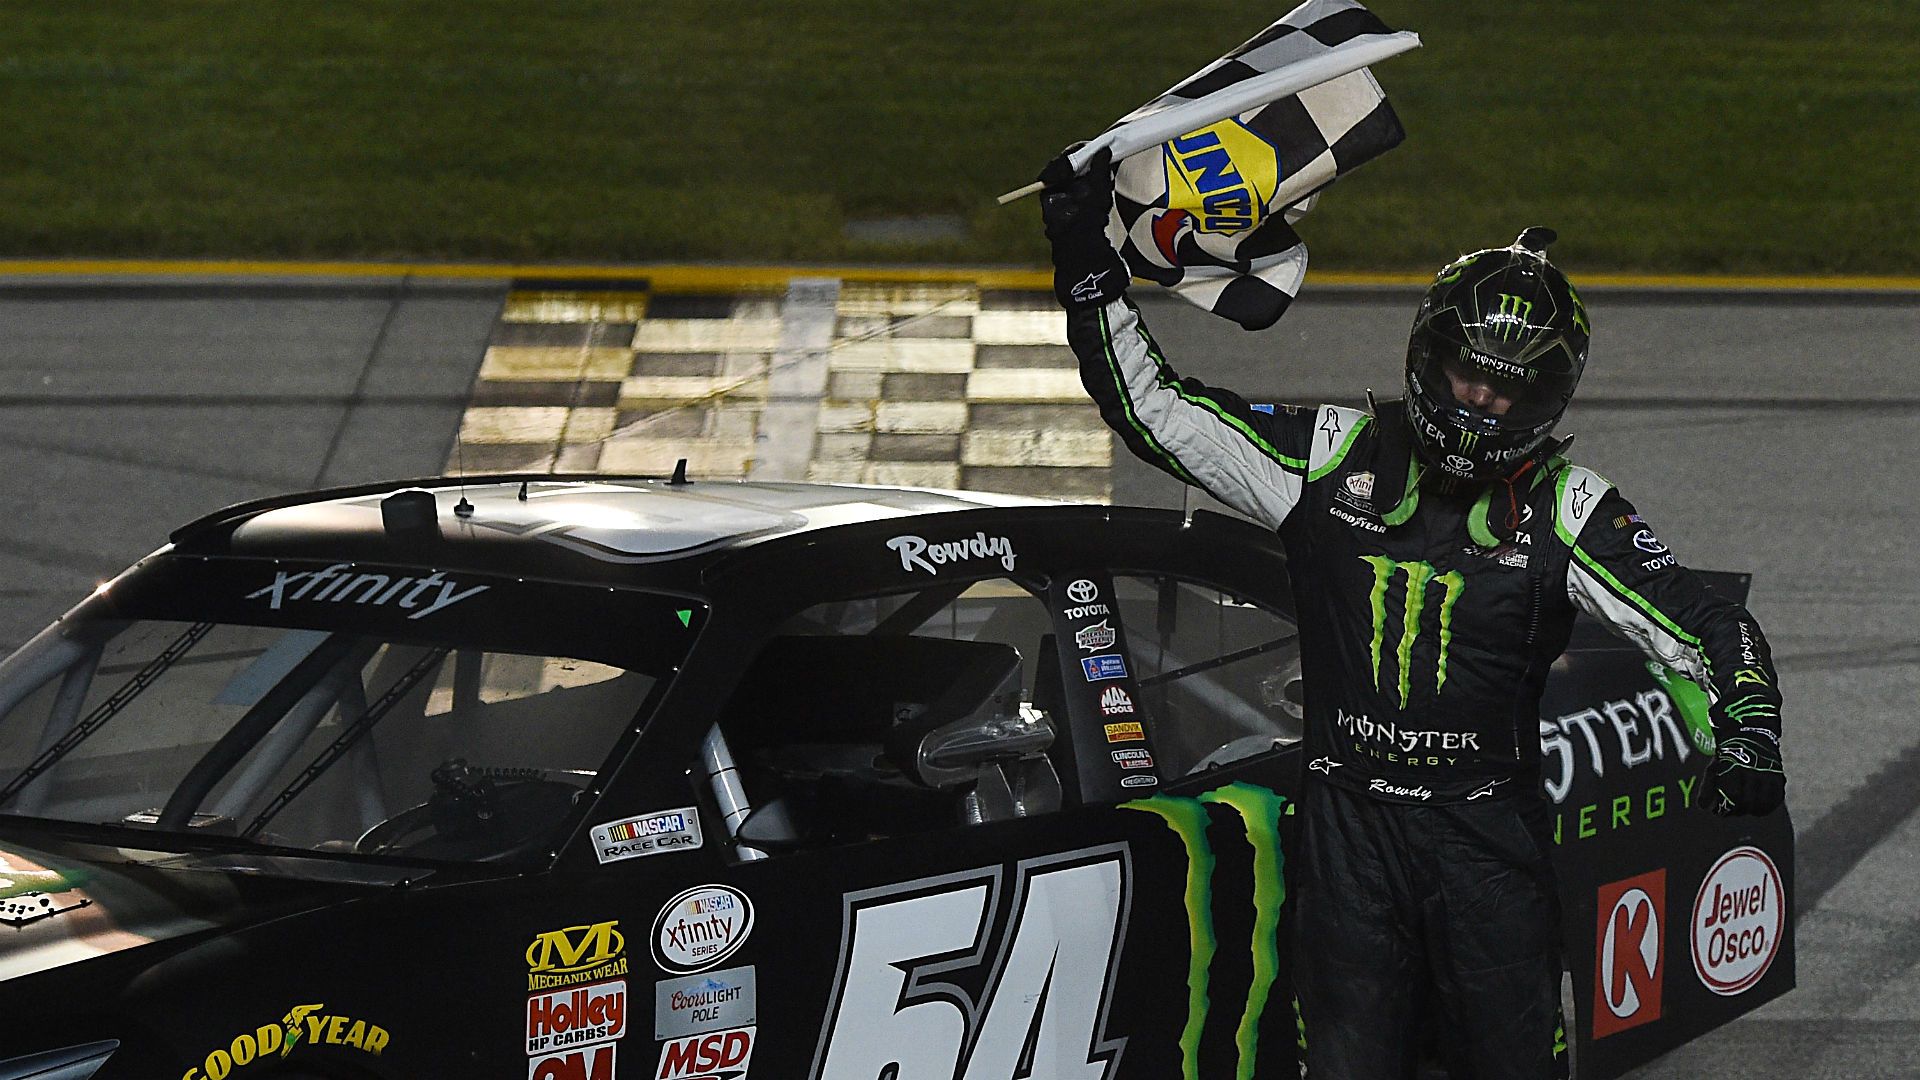 Kyle Busch wins Xfinity Series race at Chicagoland Speedway